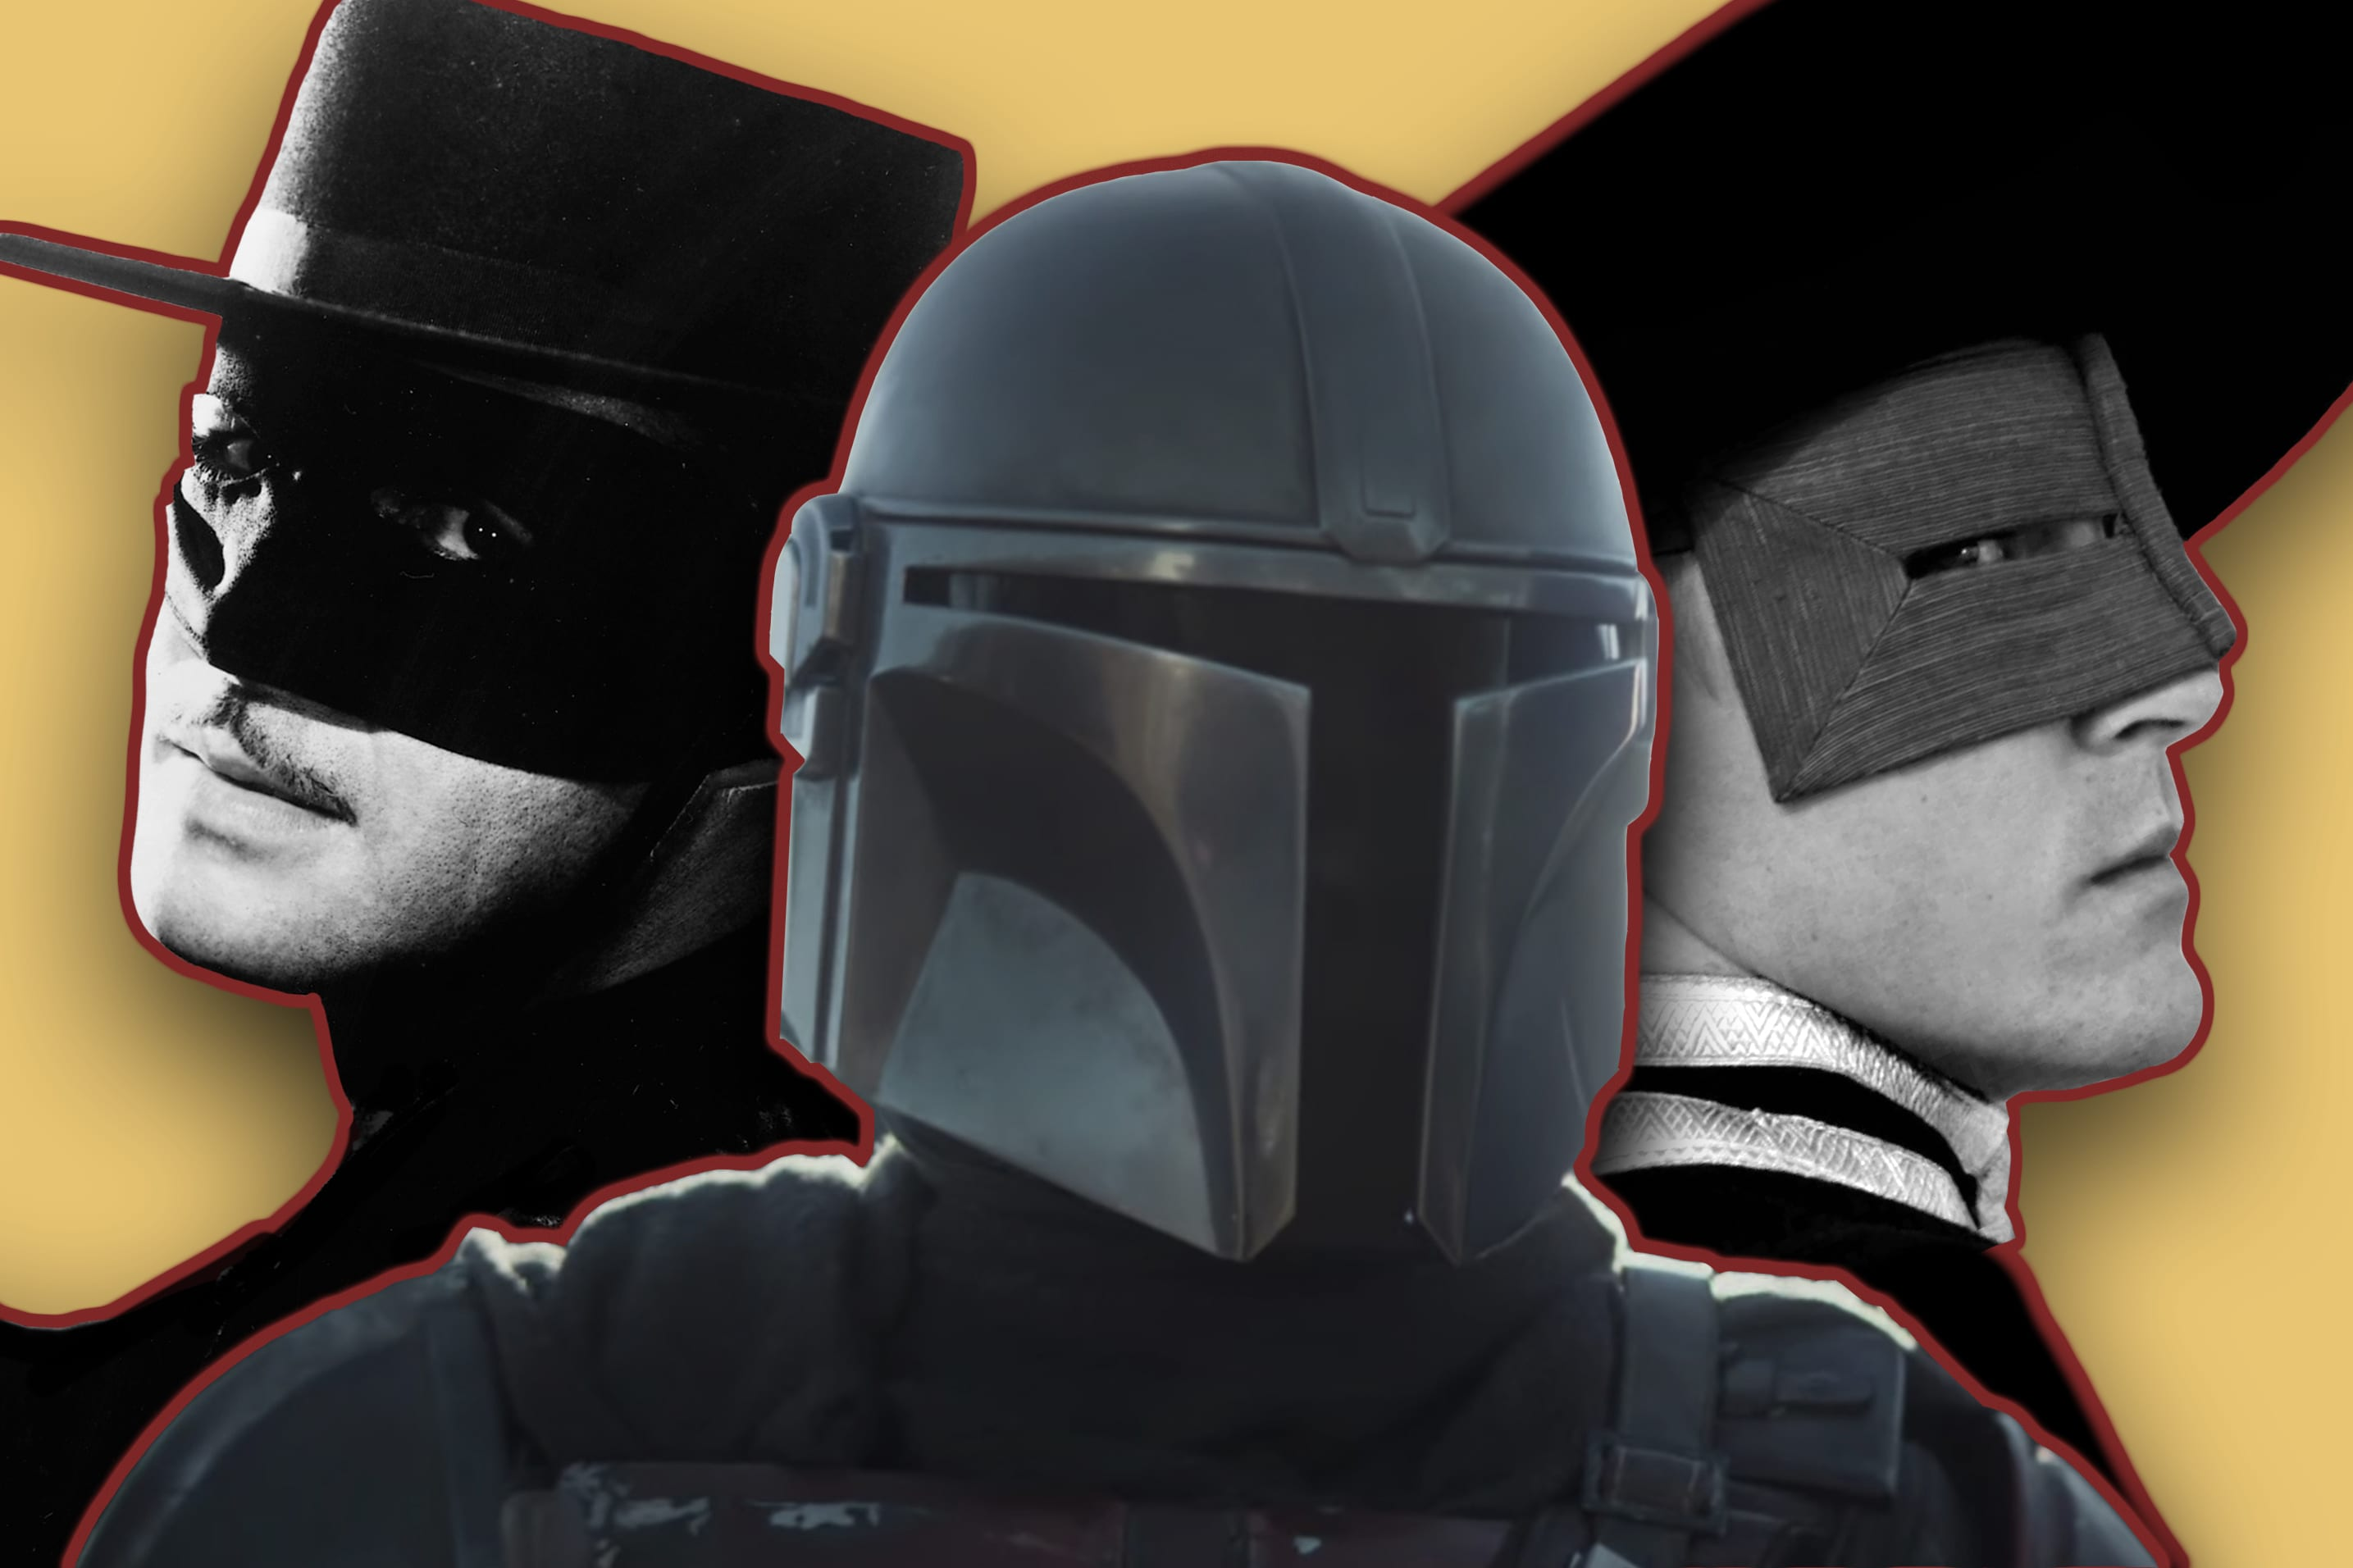 'The Mandalorian' Makes a Masked Bandit Sci-Fi's Honorable Outlaw